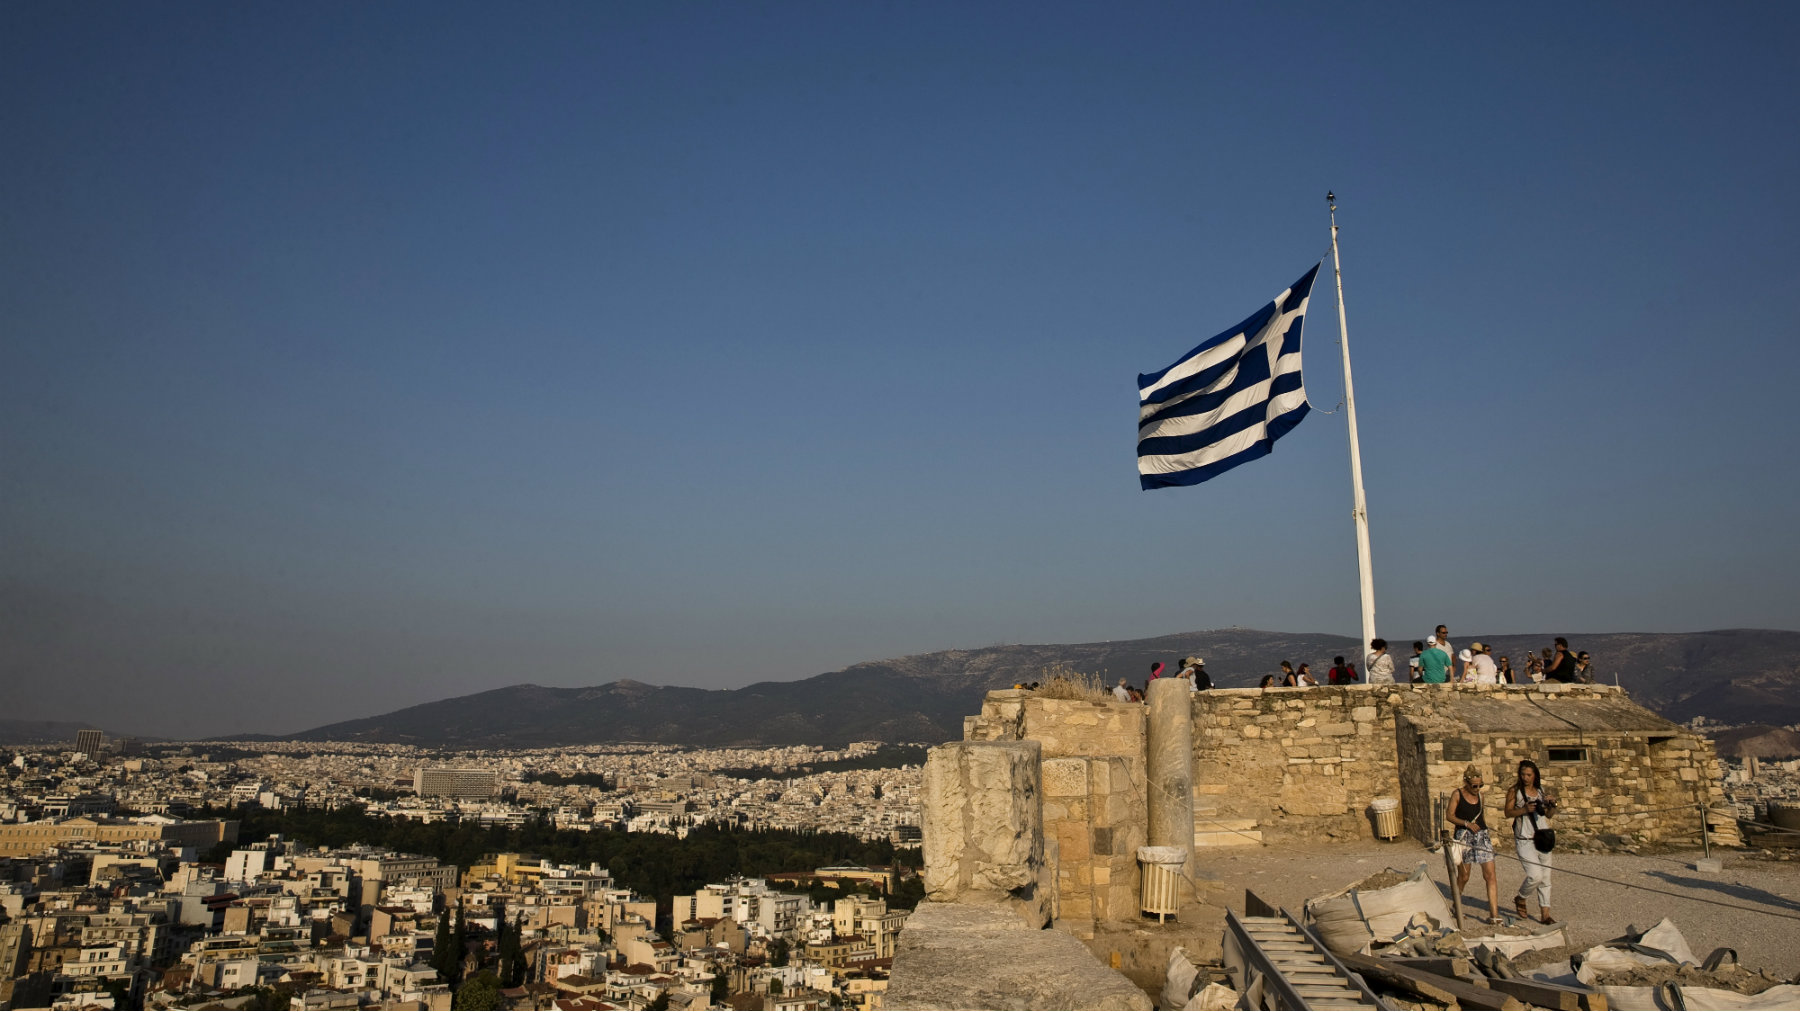 A Greek flag flutters in the wind as tourists visit the archaeological site of the Acropolis hill in Athens.